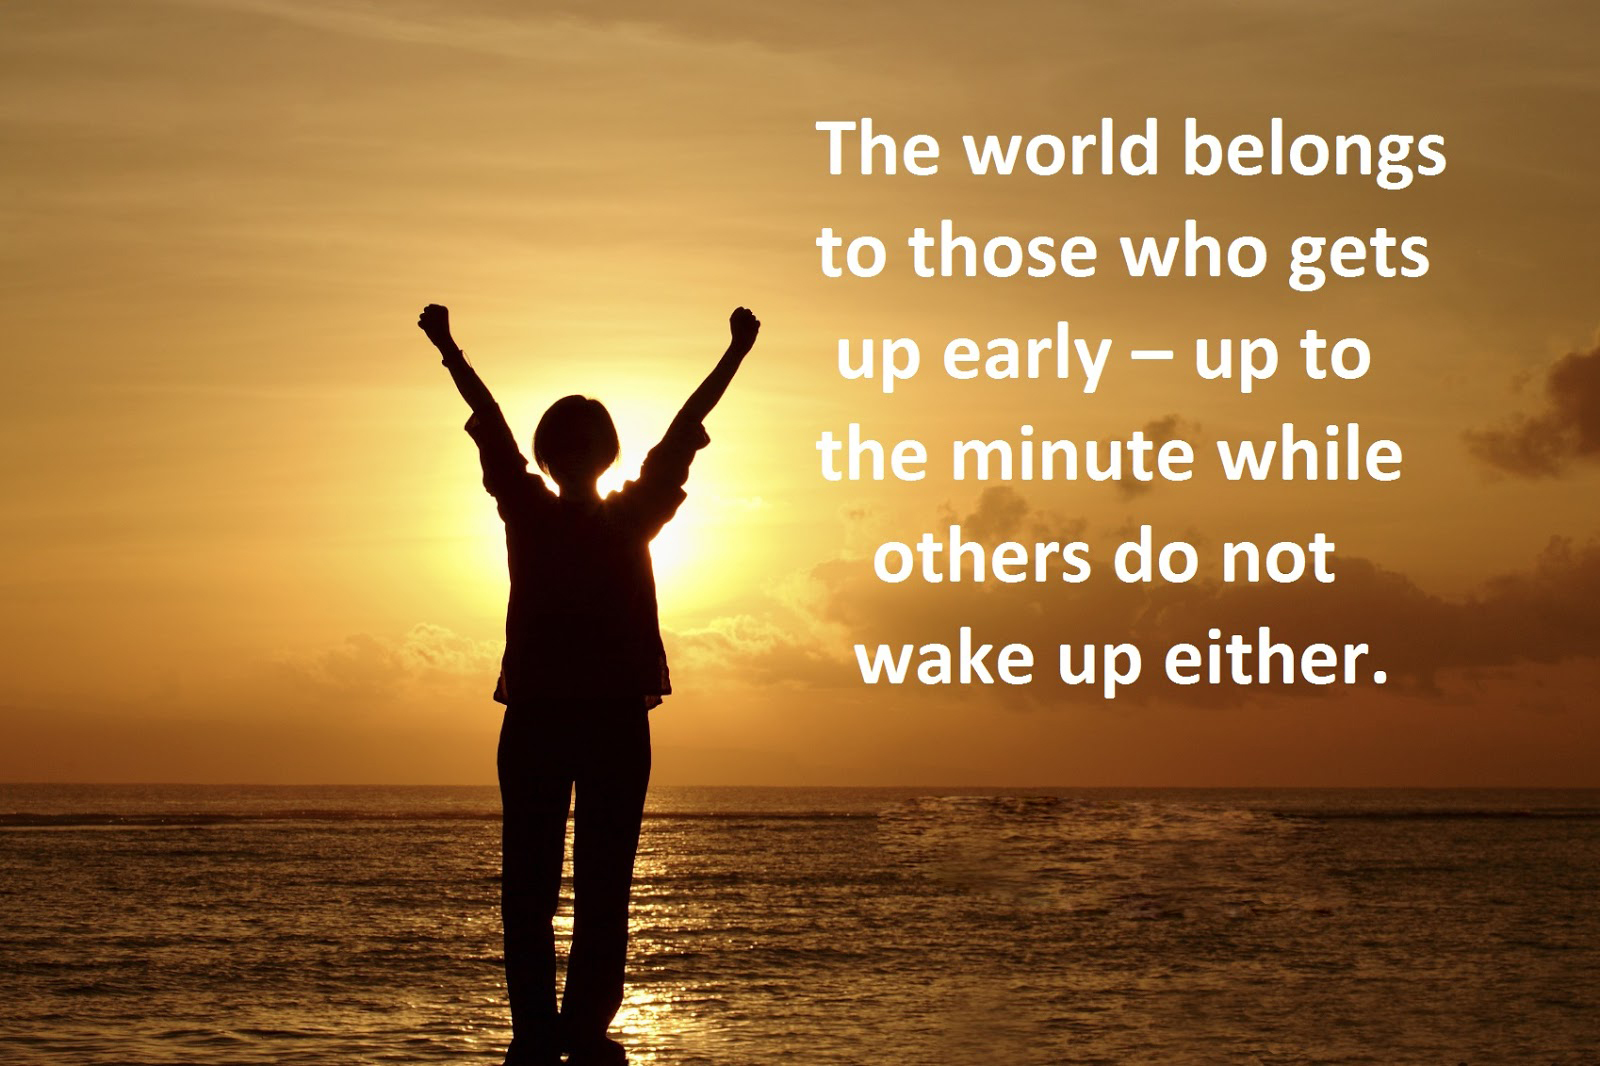 some people prefer get up early Some people prefer to get up early in the morning to start the day's work while other people like to get up later in the day to work until late at night.